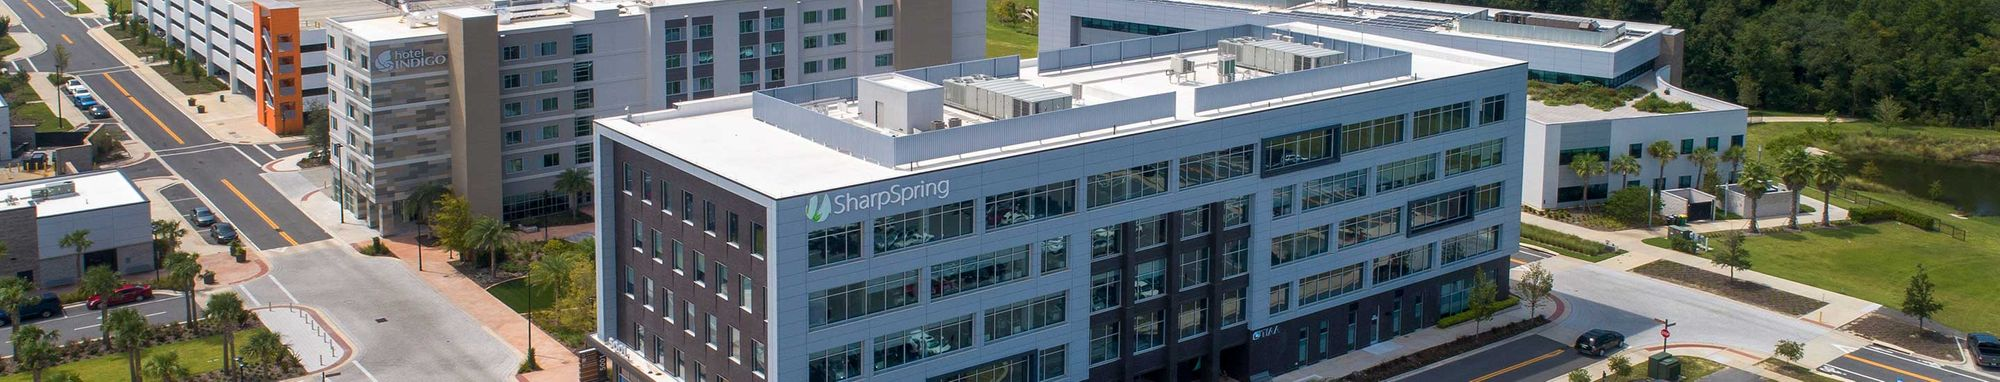 Clearlake Capital and Siris-Backed Constant Contact Agrees to Acquire SharpSpring